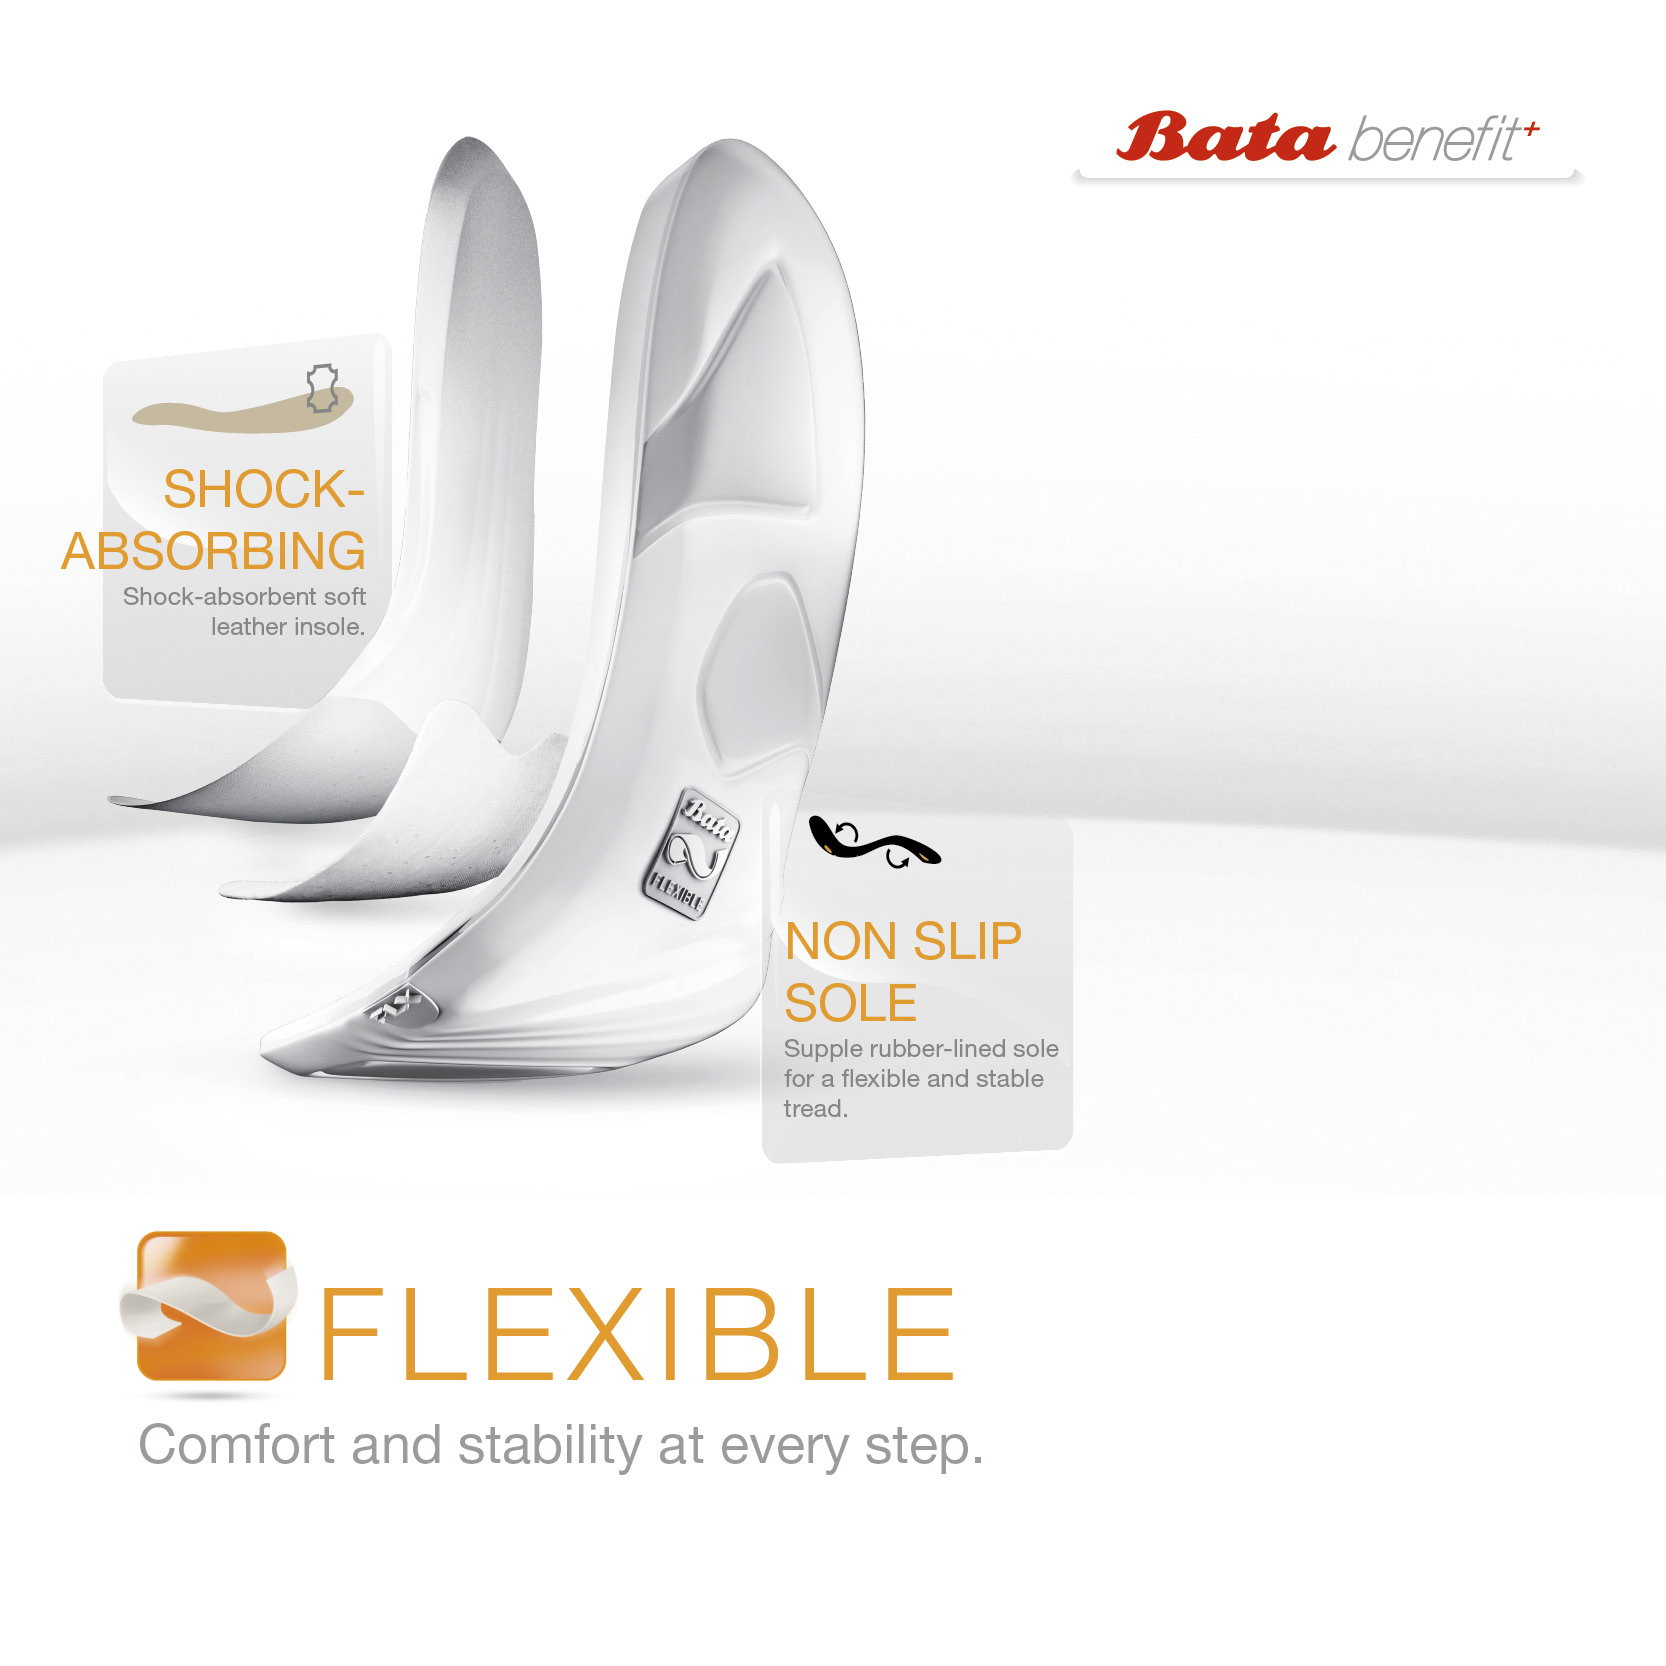 bata-flexible